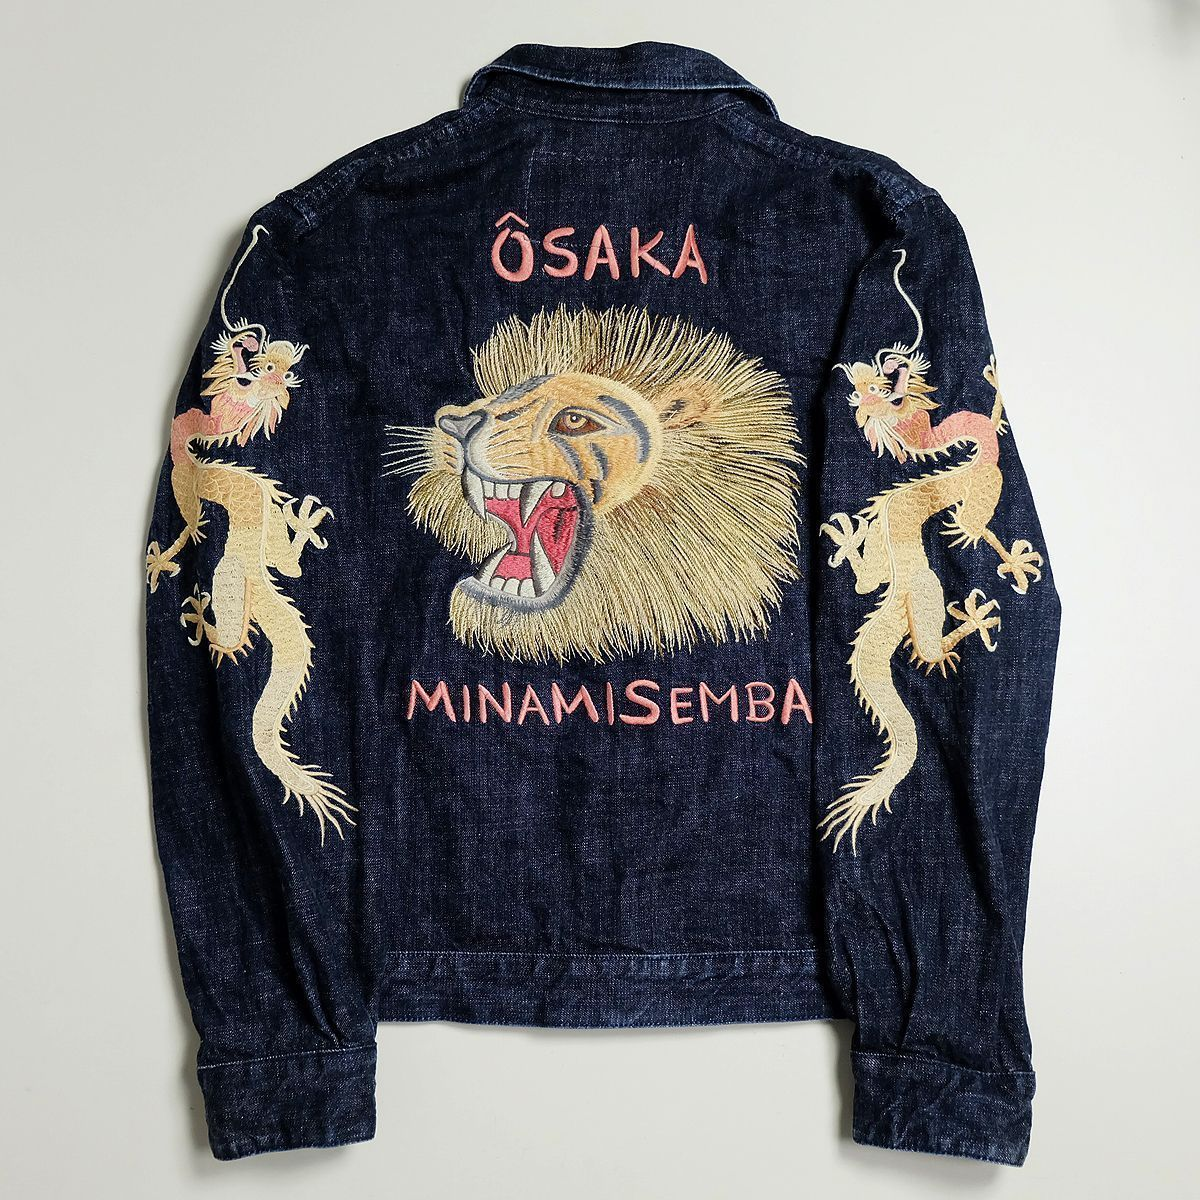 10 Exhilarating Beautiful Japanese Embroidery Ideas Embroidered Denim Jacket Embroidered Denim Japanese Embroidery [ 1200 x 1200 Pixel ]